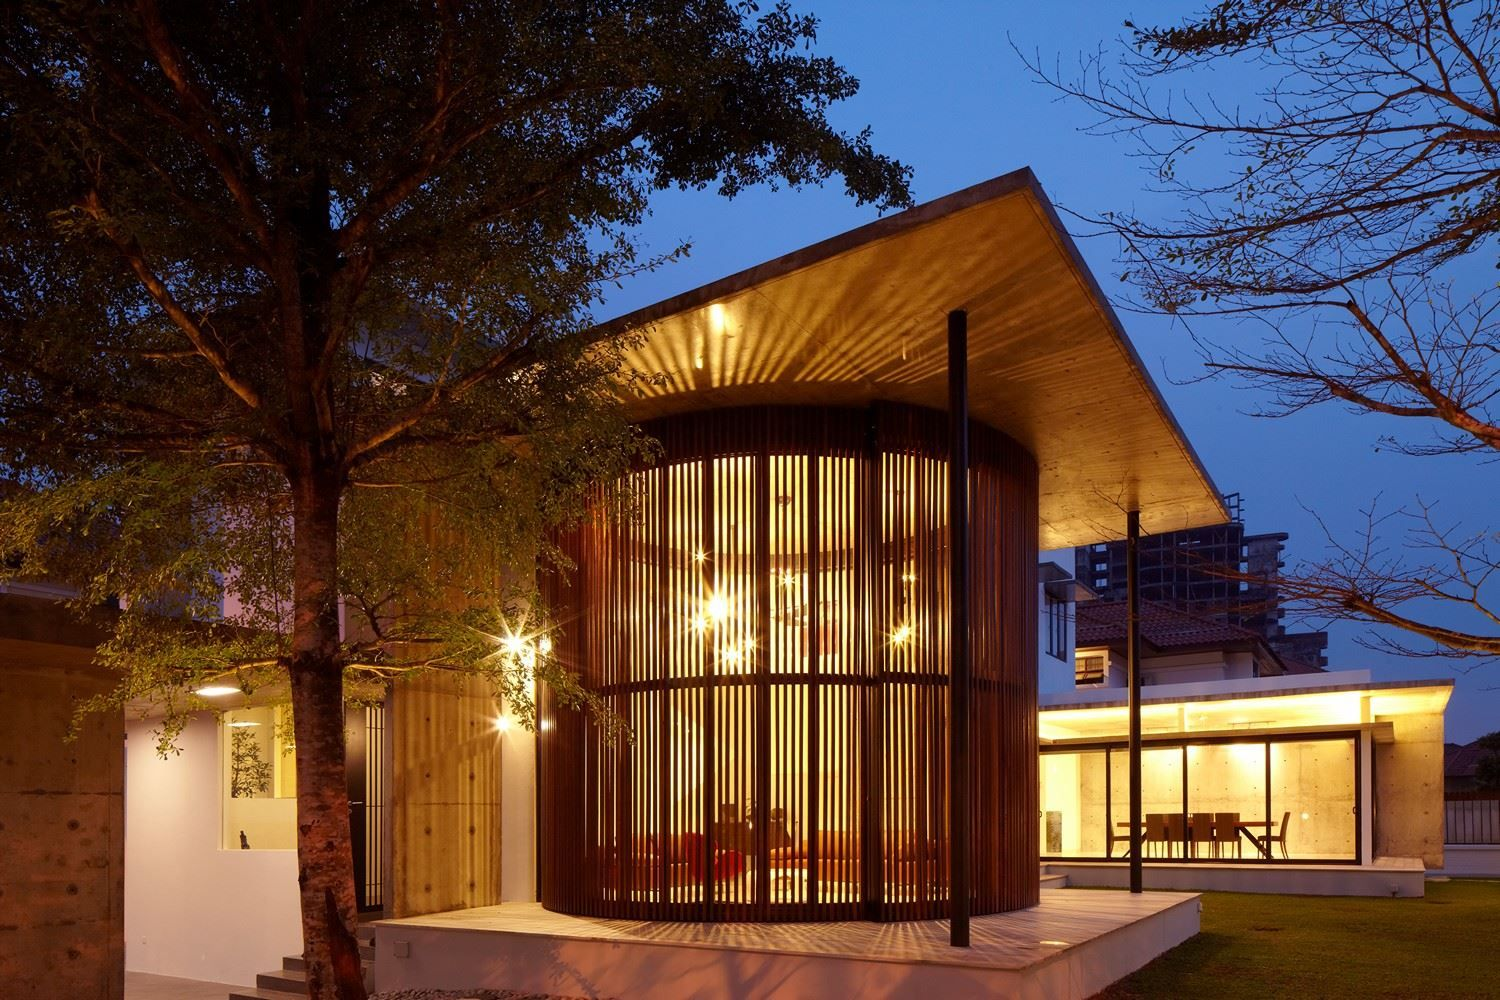 Evening View As Interior Design Patio Modern Style Covered